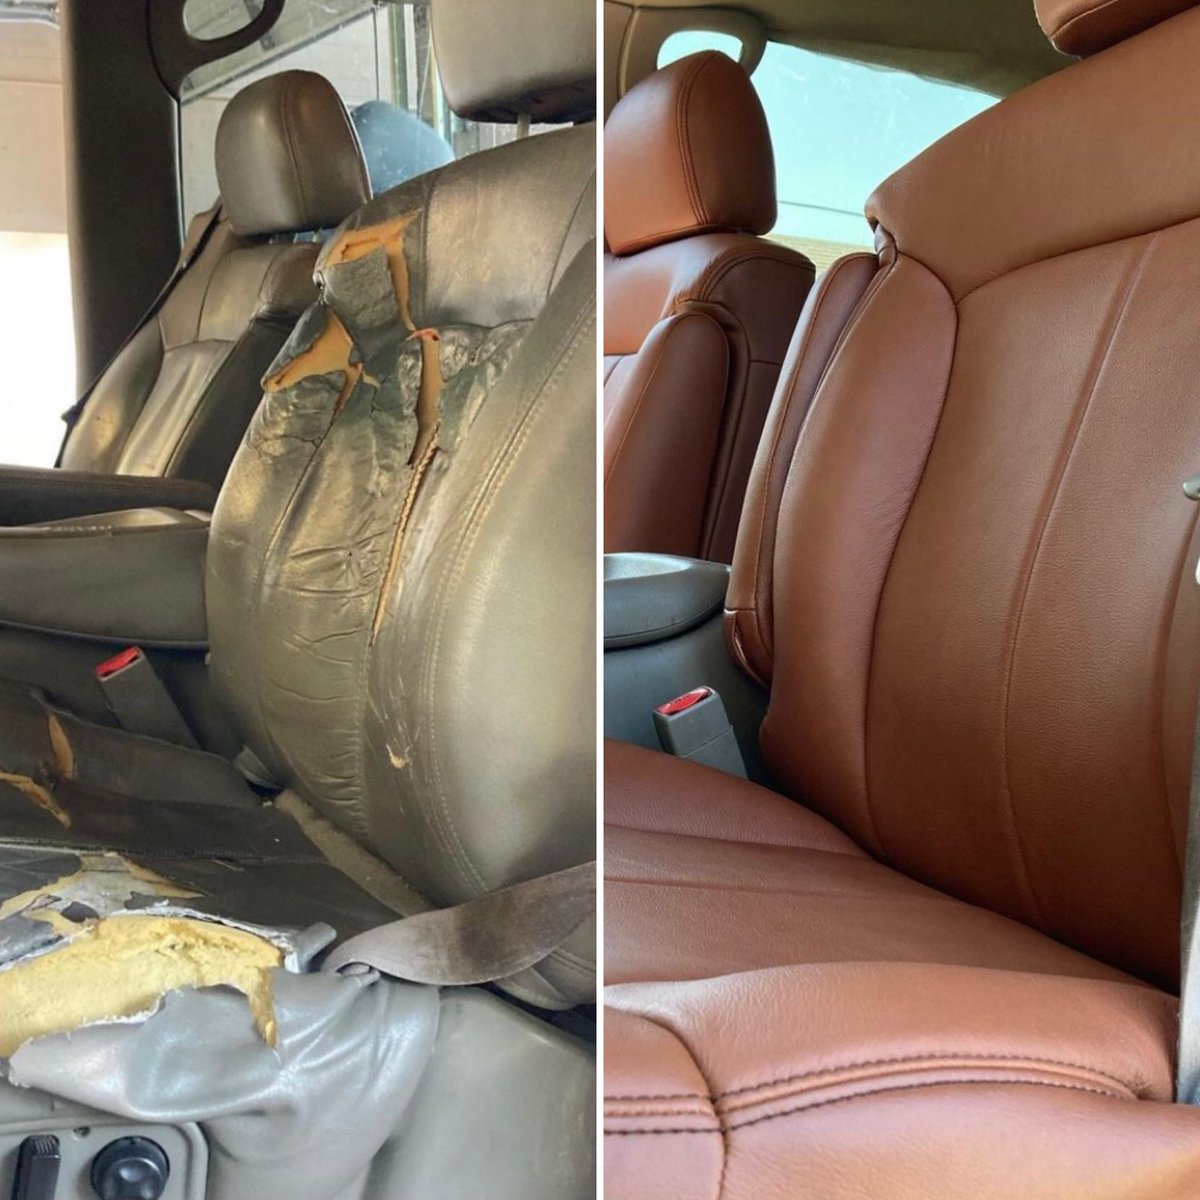 Let's hope our turkeys turn out as golden-y brown as these seats 🦃 - amazing transformation by @seatzetc  Curious about Katzkin? Give us a call at 877-811-8840!  #beforeandafter #gmcsierra #gmc #loveyourdrive #becauseclothsucks #leatherisbetter #katzkin #katzkinleather https://t.co/lmFm4jF7ui